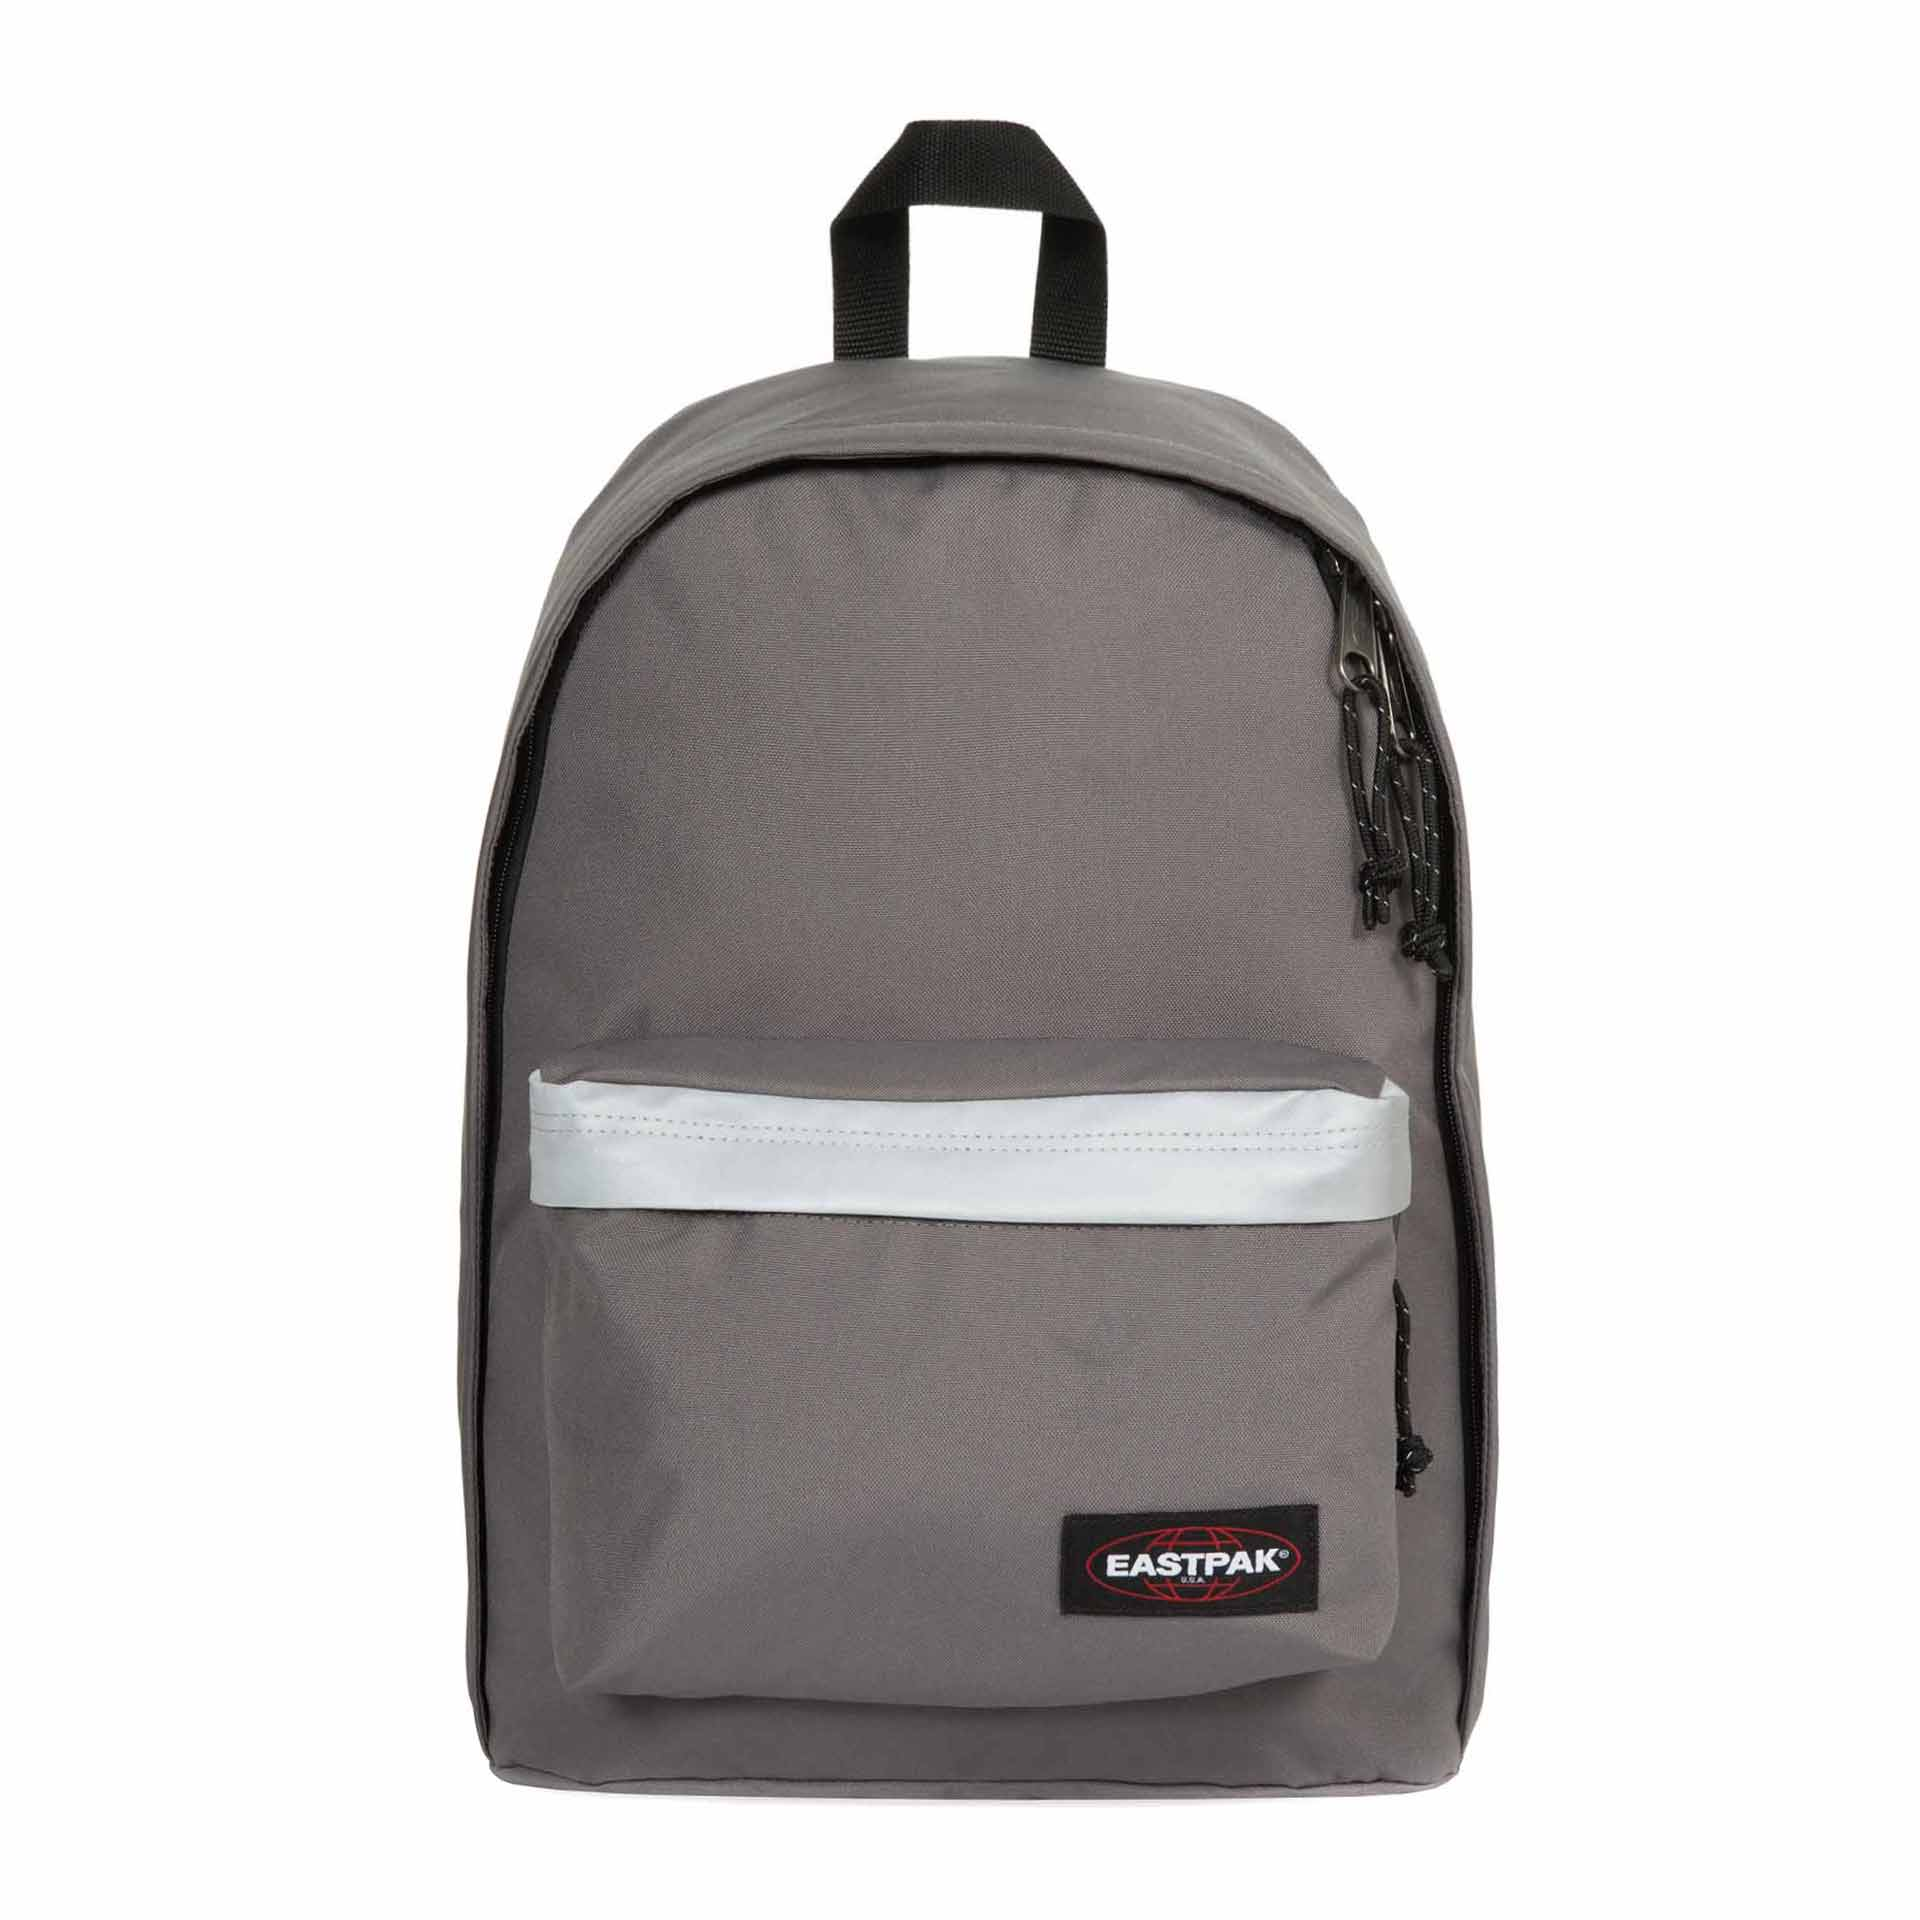 Eastpak Selection Out of Office Rucksack mit Reflektorstreifen reflective grey